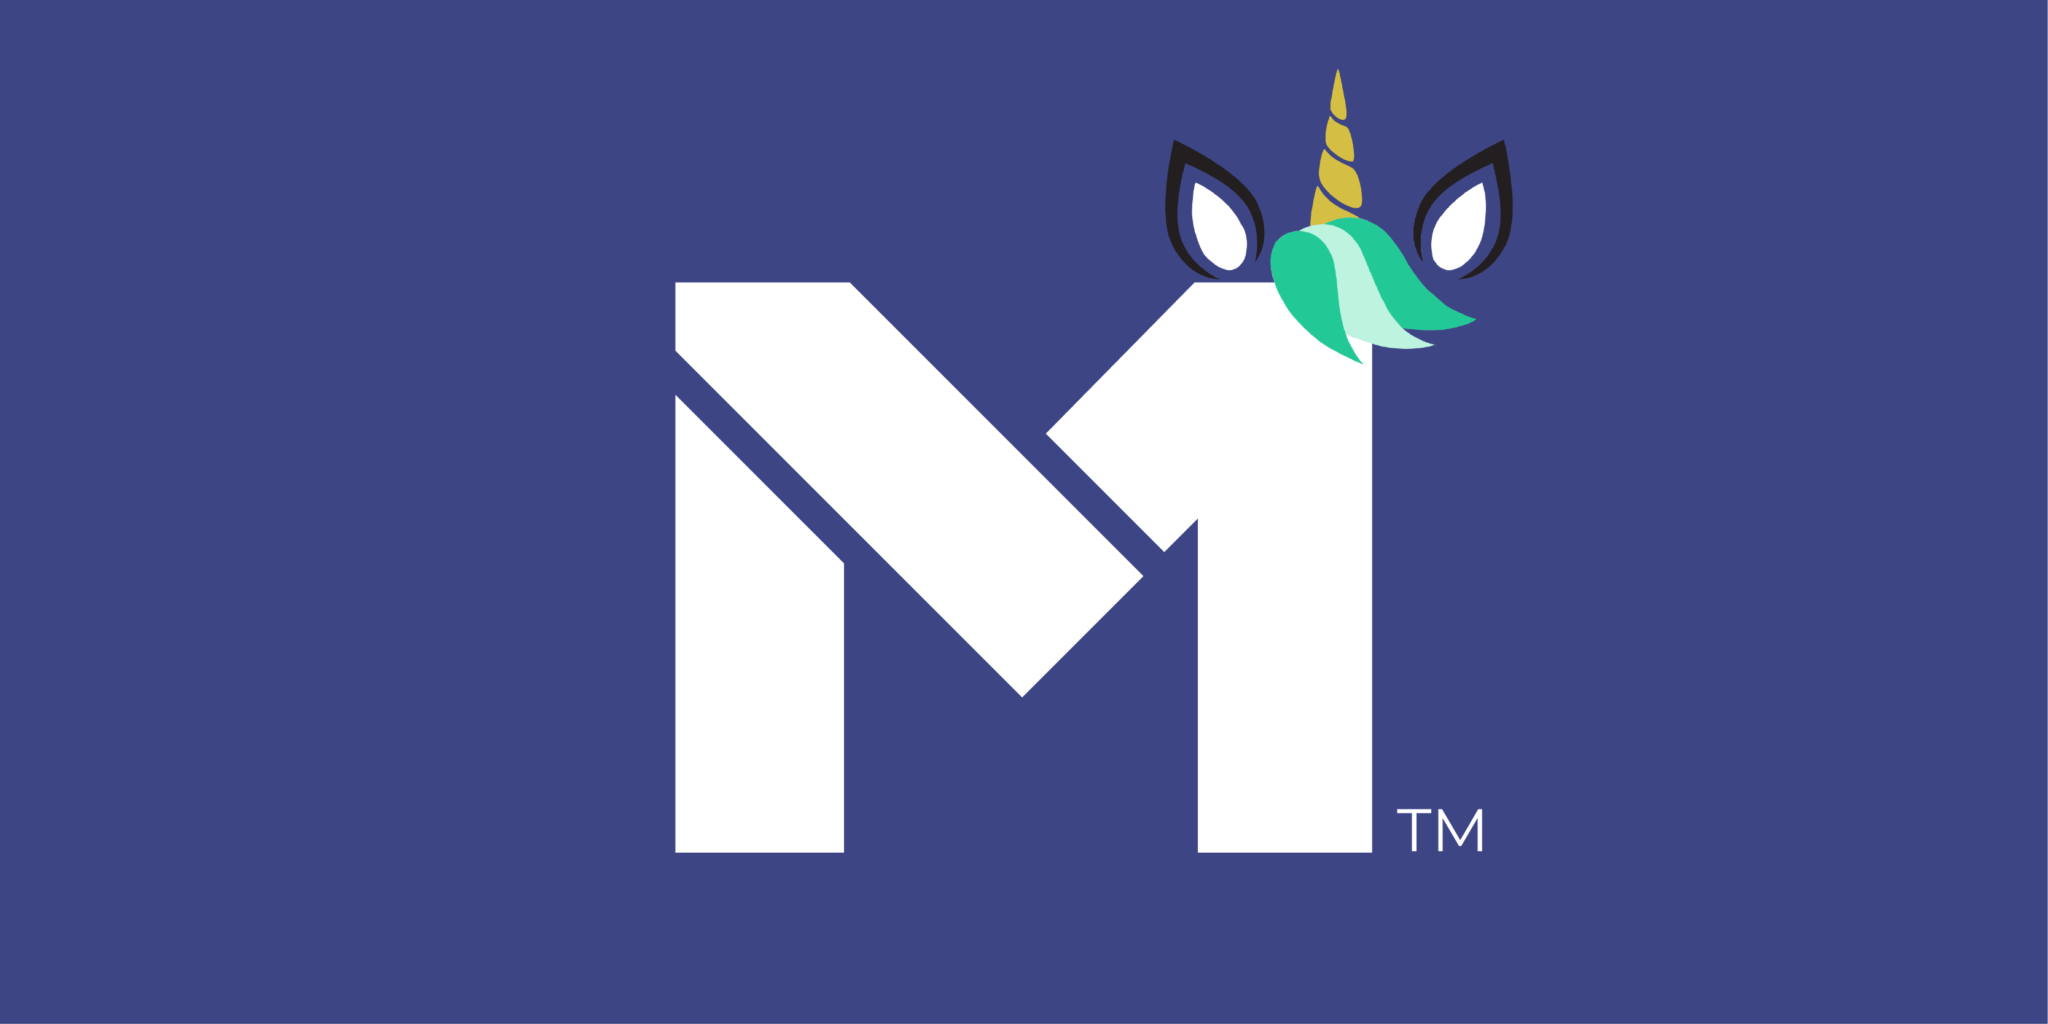 Image of the M1 logo with a unicorn sticker on the top right